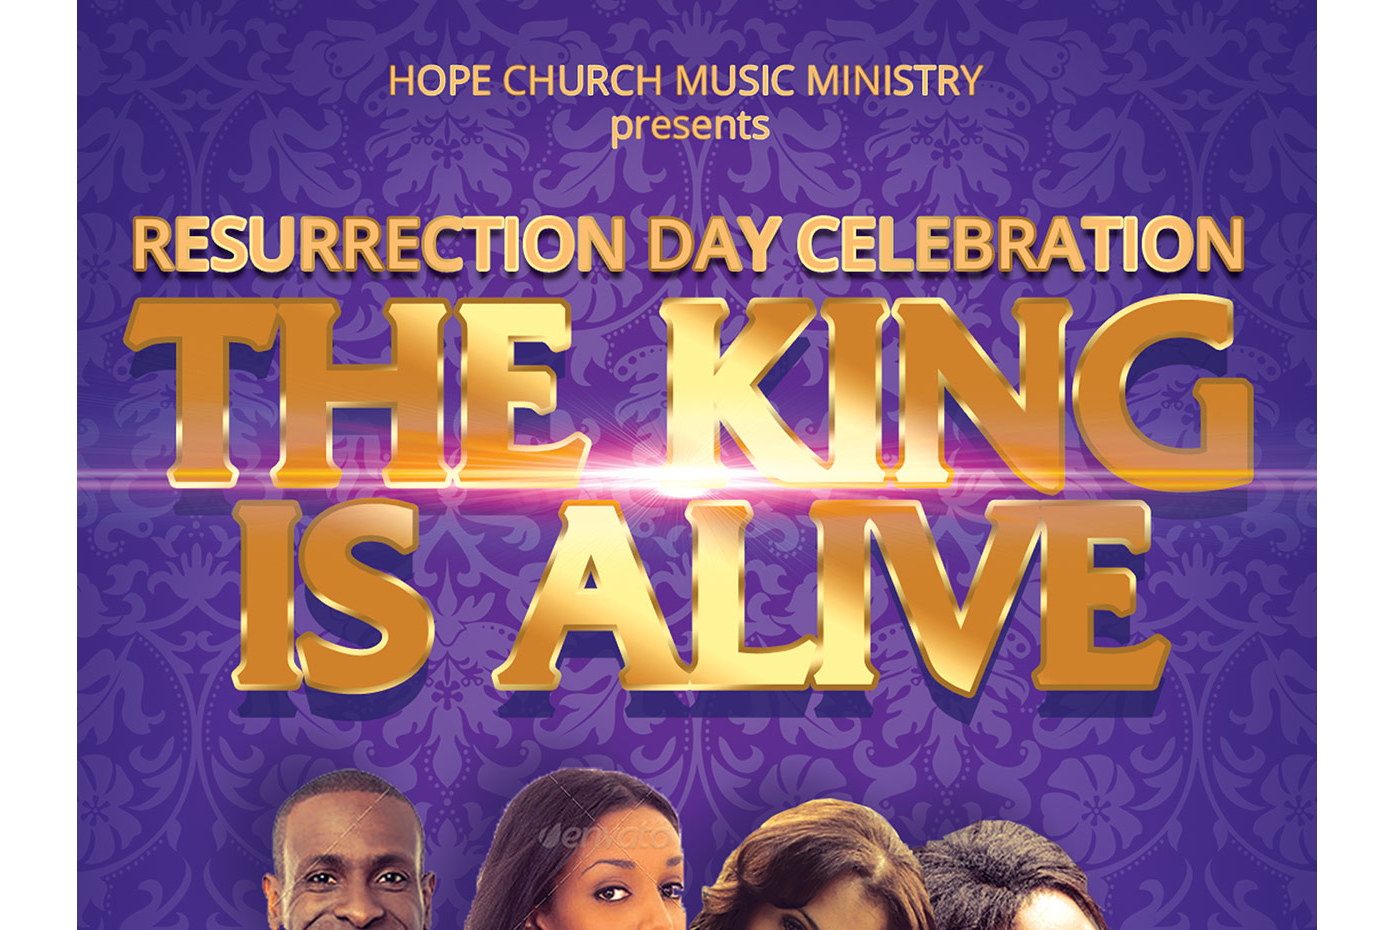 Resurrection Day Concert Flyer Poster Template example image 3